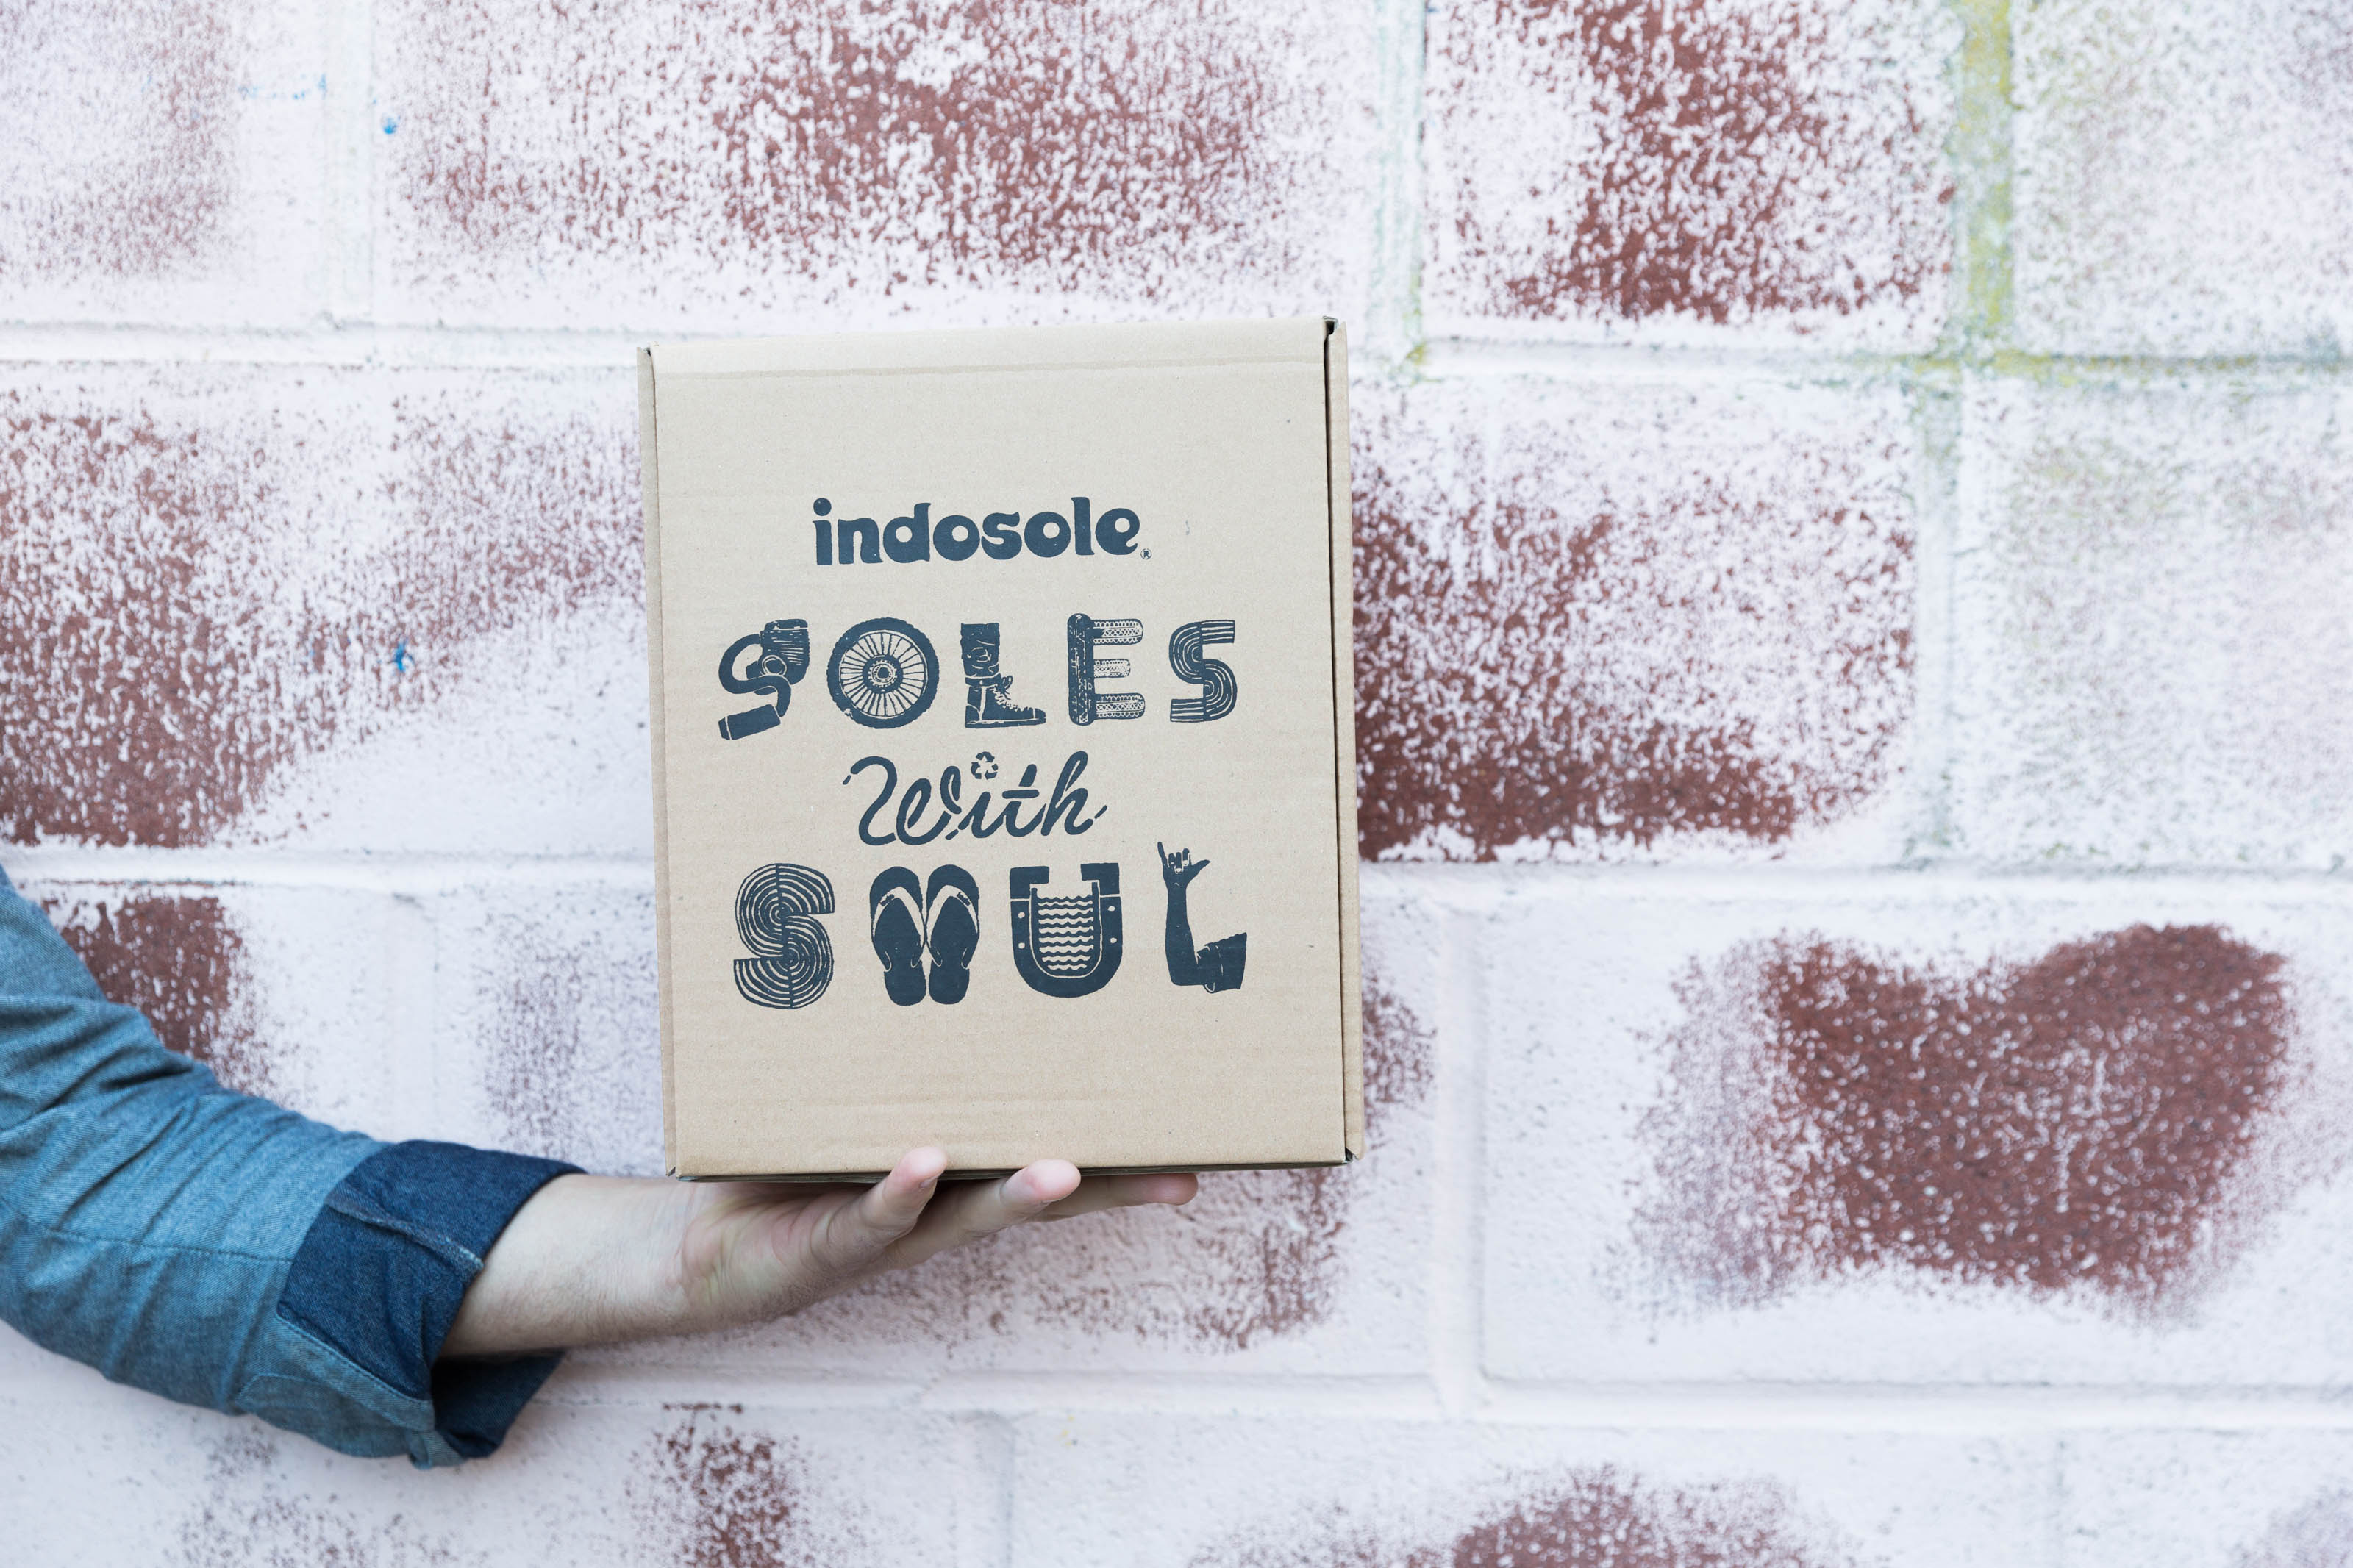 Indosole Soles with Soul